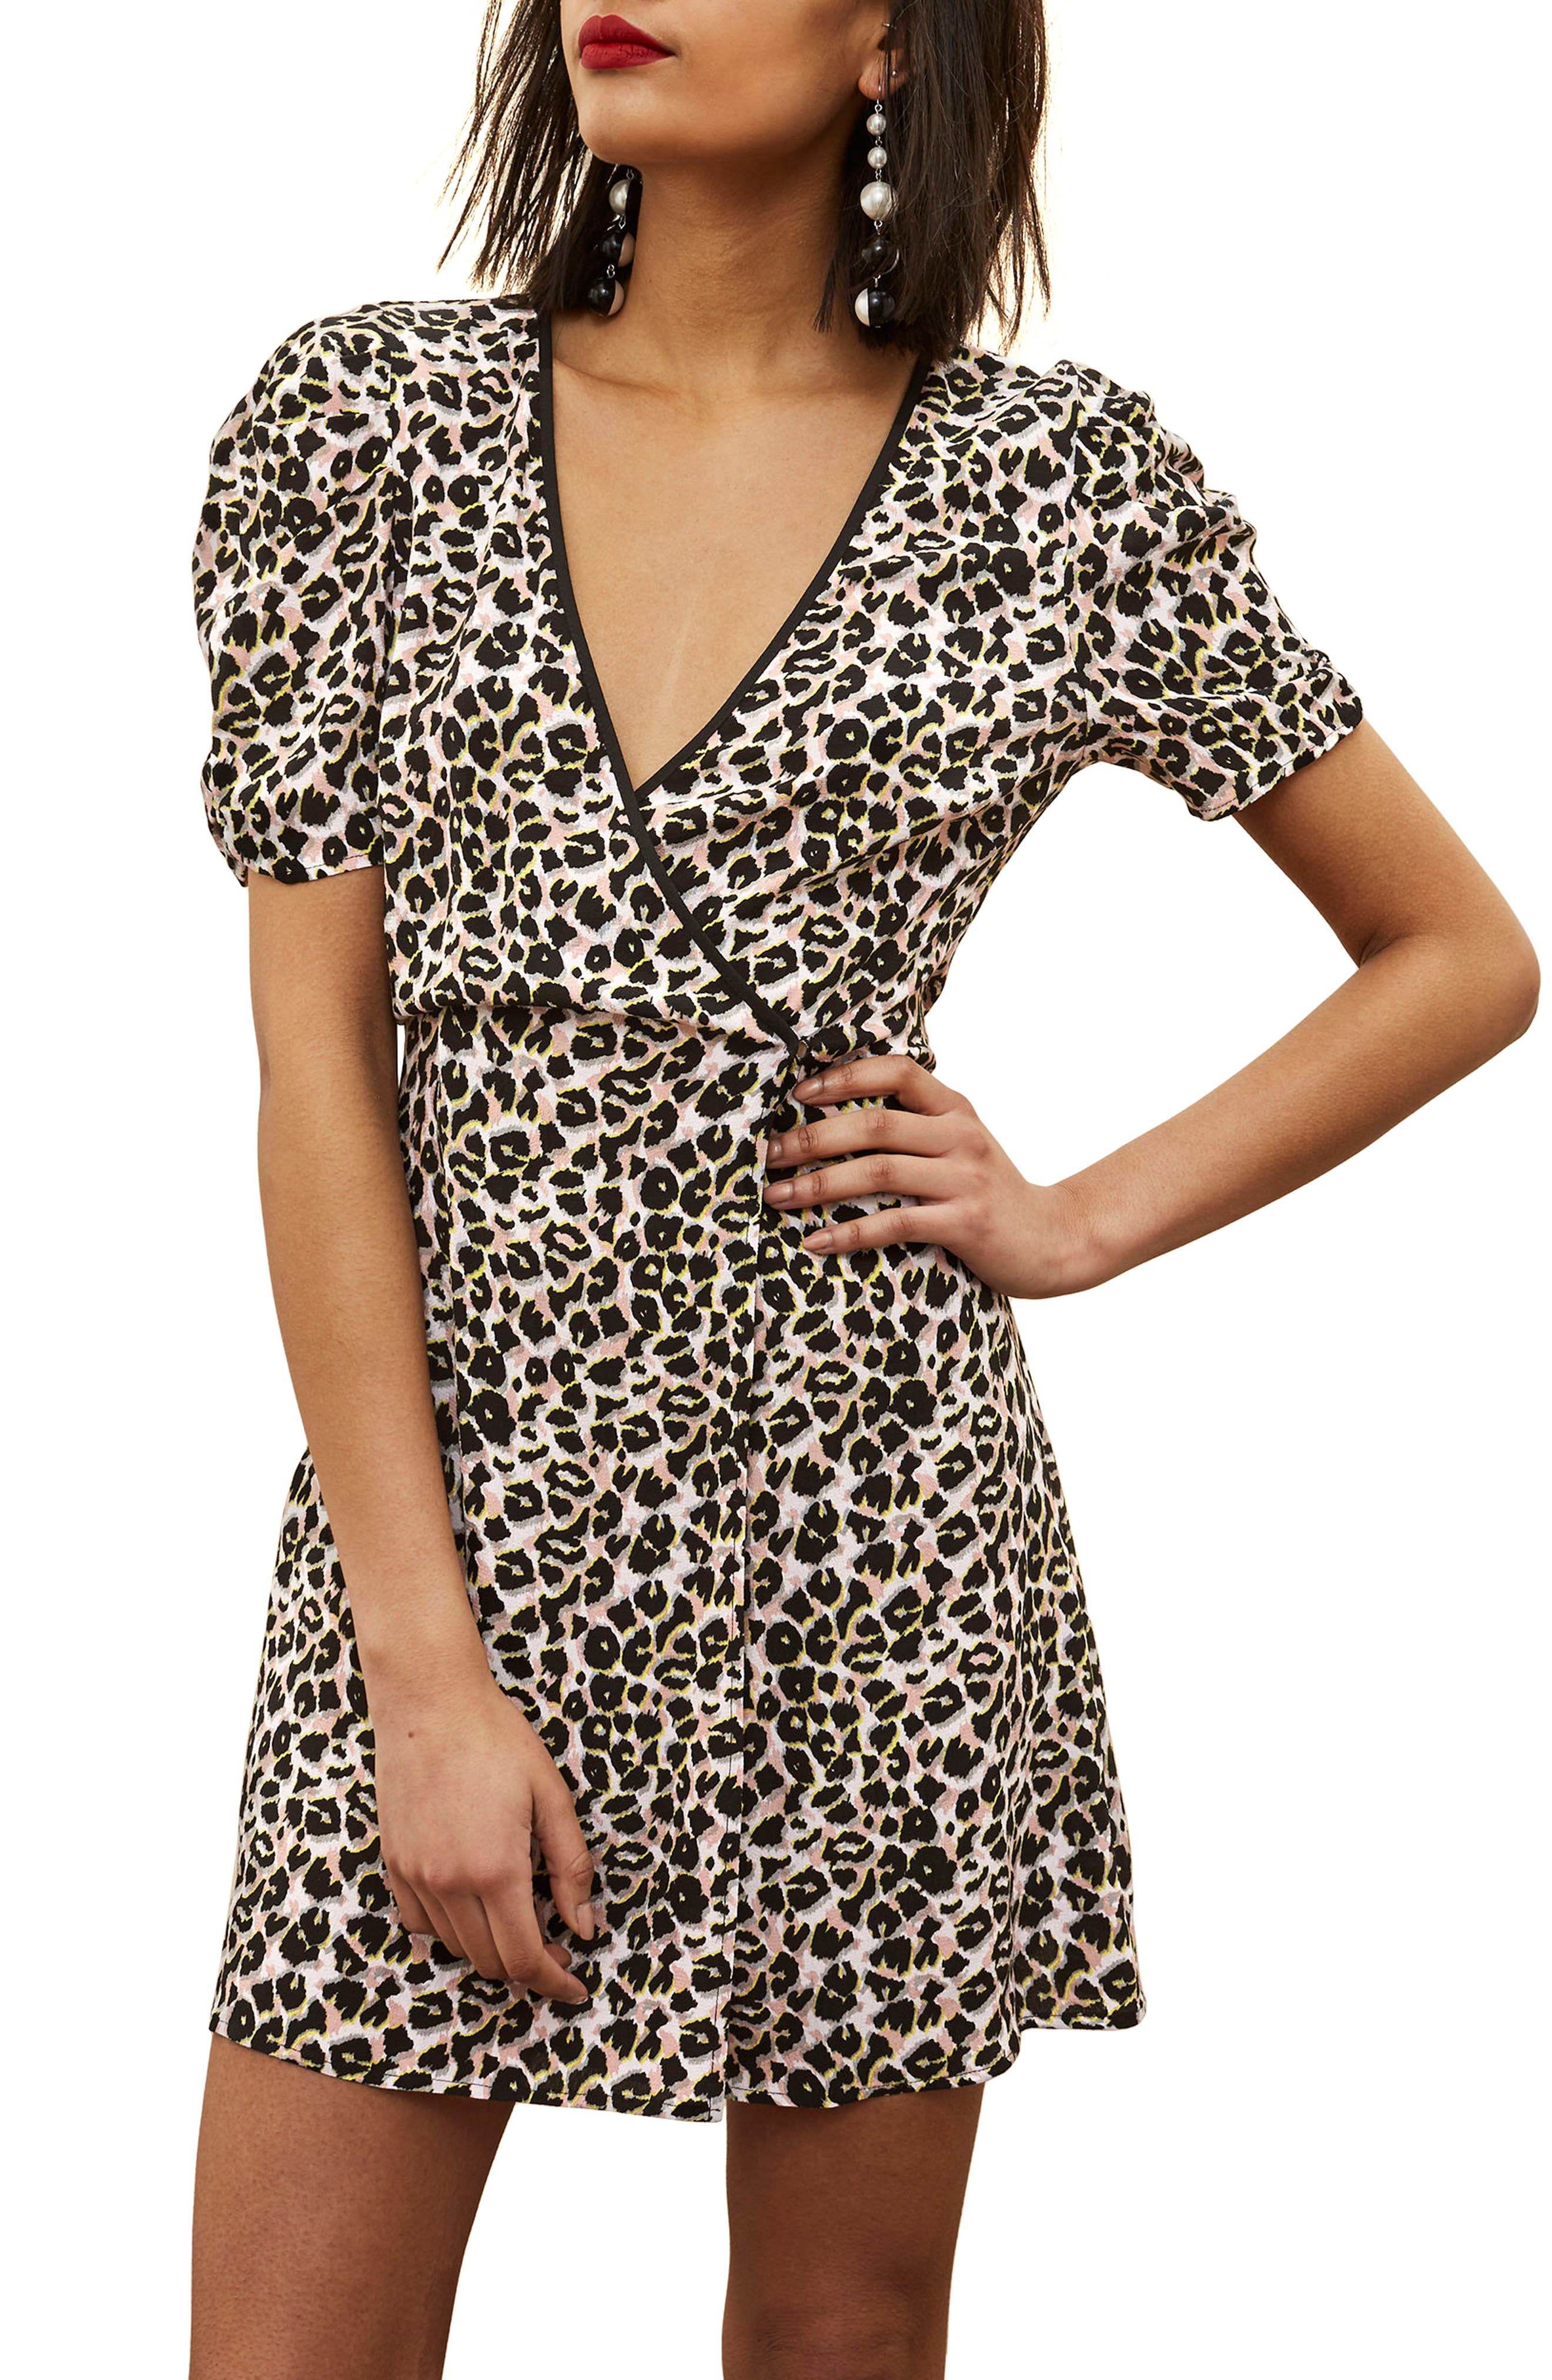 Alternate Image 1 Selected - Topshop Leopard Wrap Minidress